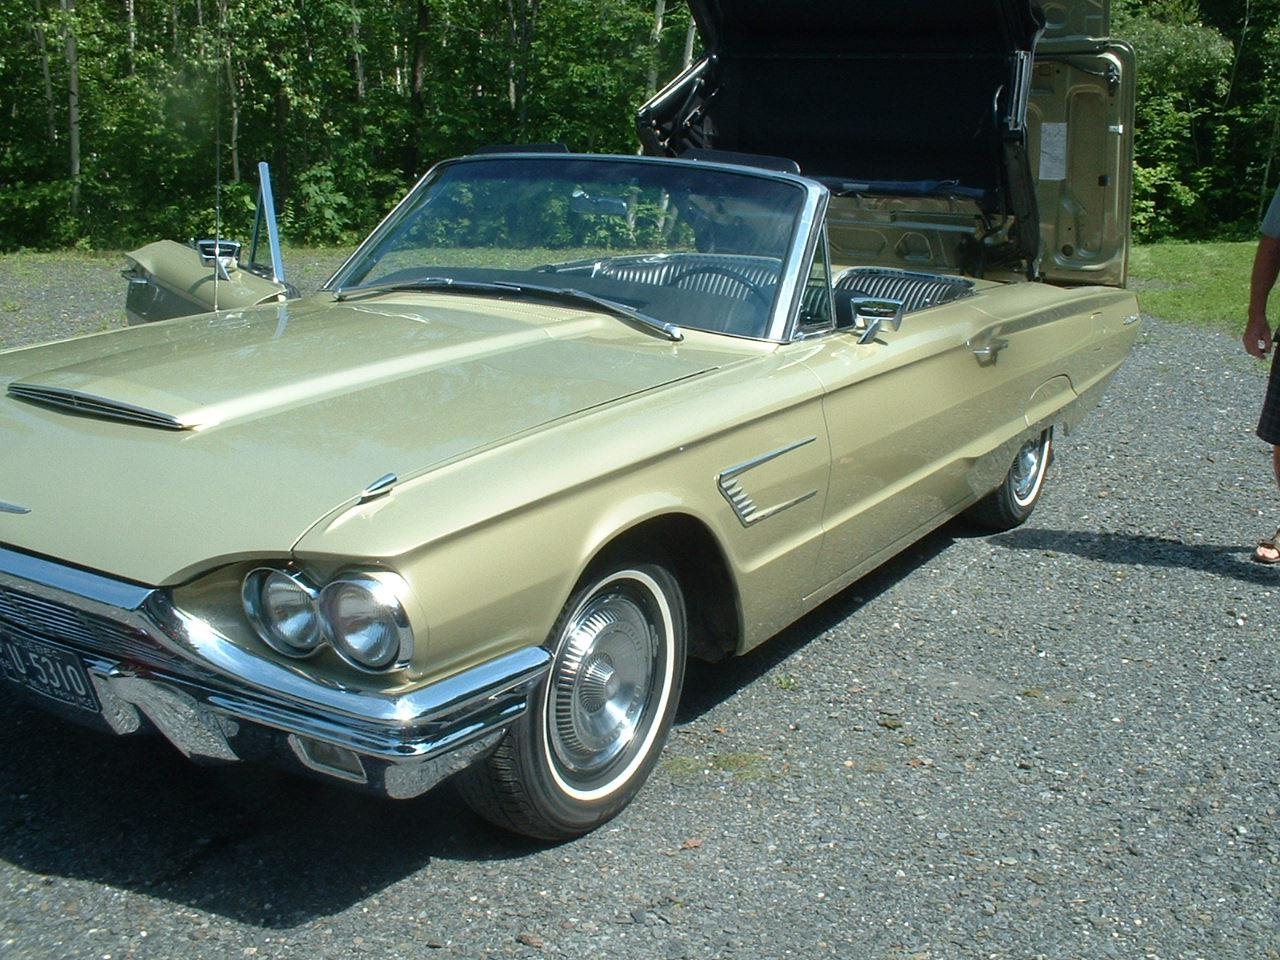 Large Picture of Classic '66 Thunderbird located in Quebec - $59,500.00 Offered by a Private Seller - FZQS